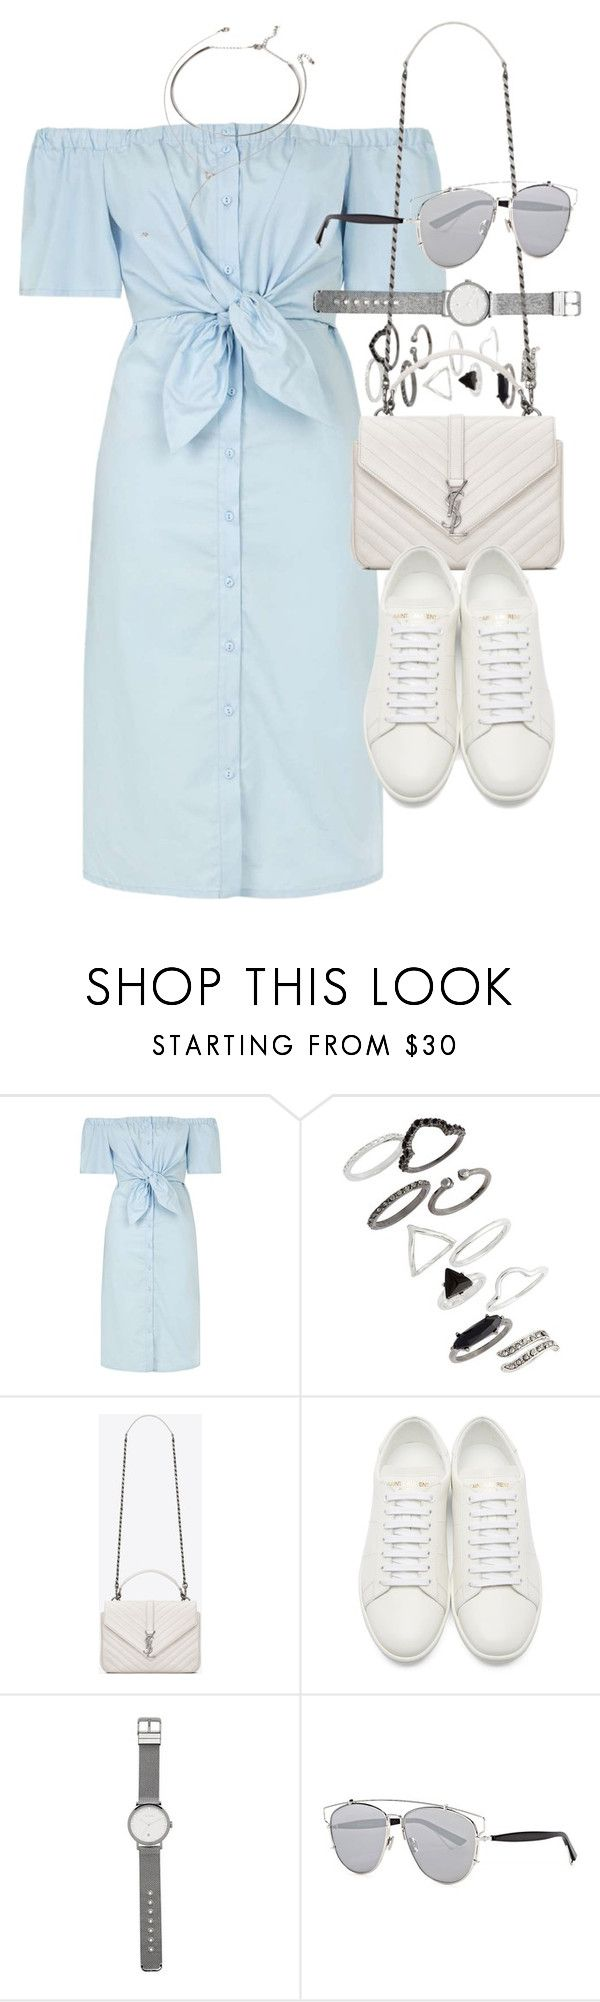 """""""Outfit for summer with a denim dress"""" by ferned ❤ liked on Polyvore featuring Topshop, Yves Saint Laurent, Witchery, Christian Dior and Forever 21"""